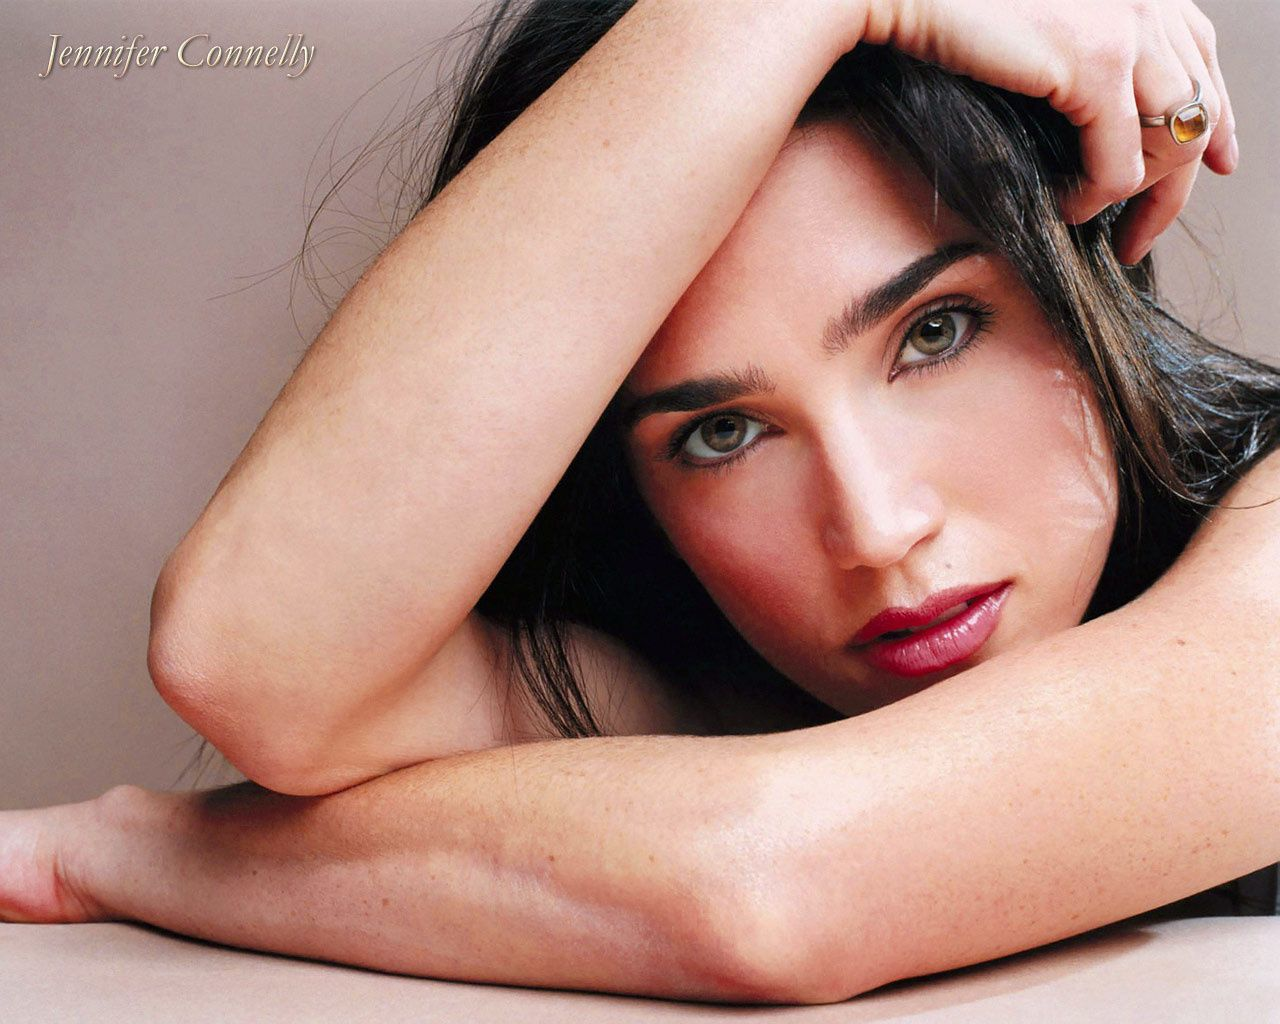 Cycle Jennifer Connelly